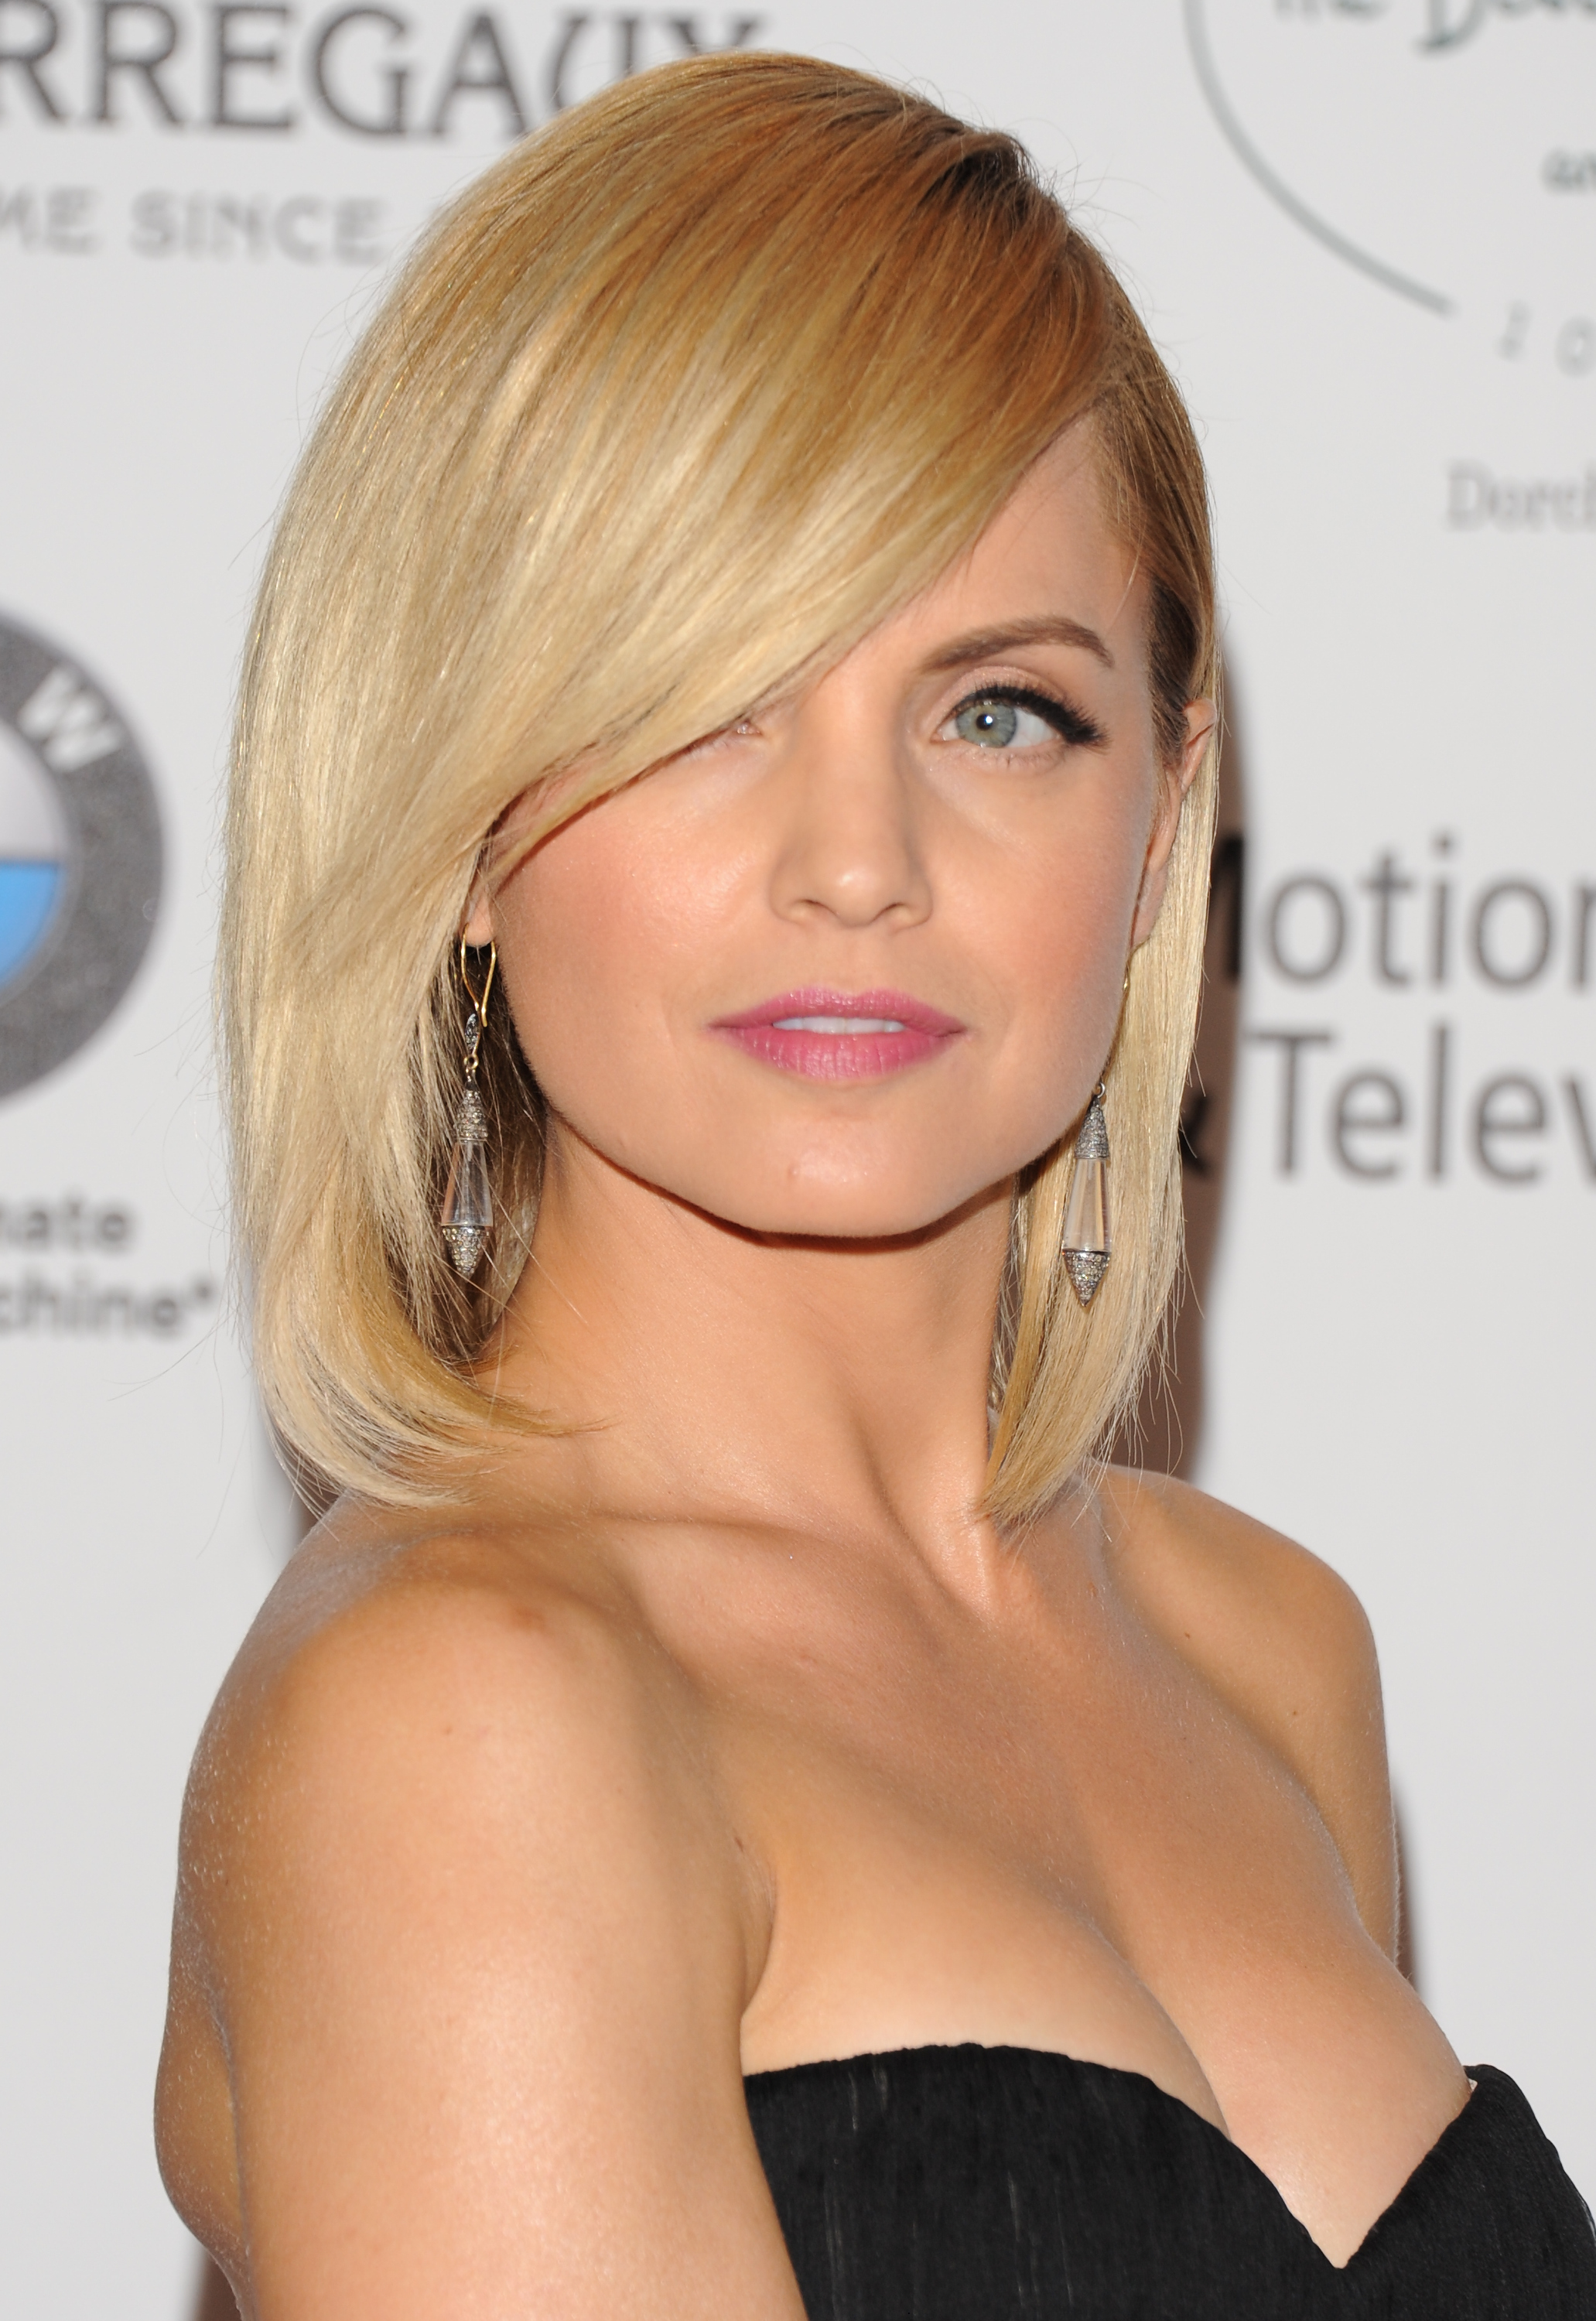 The Best Celebrity Side Swept Fringe Hairstyles - Women Hairstyles